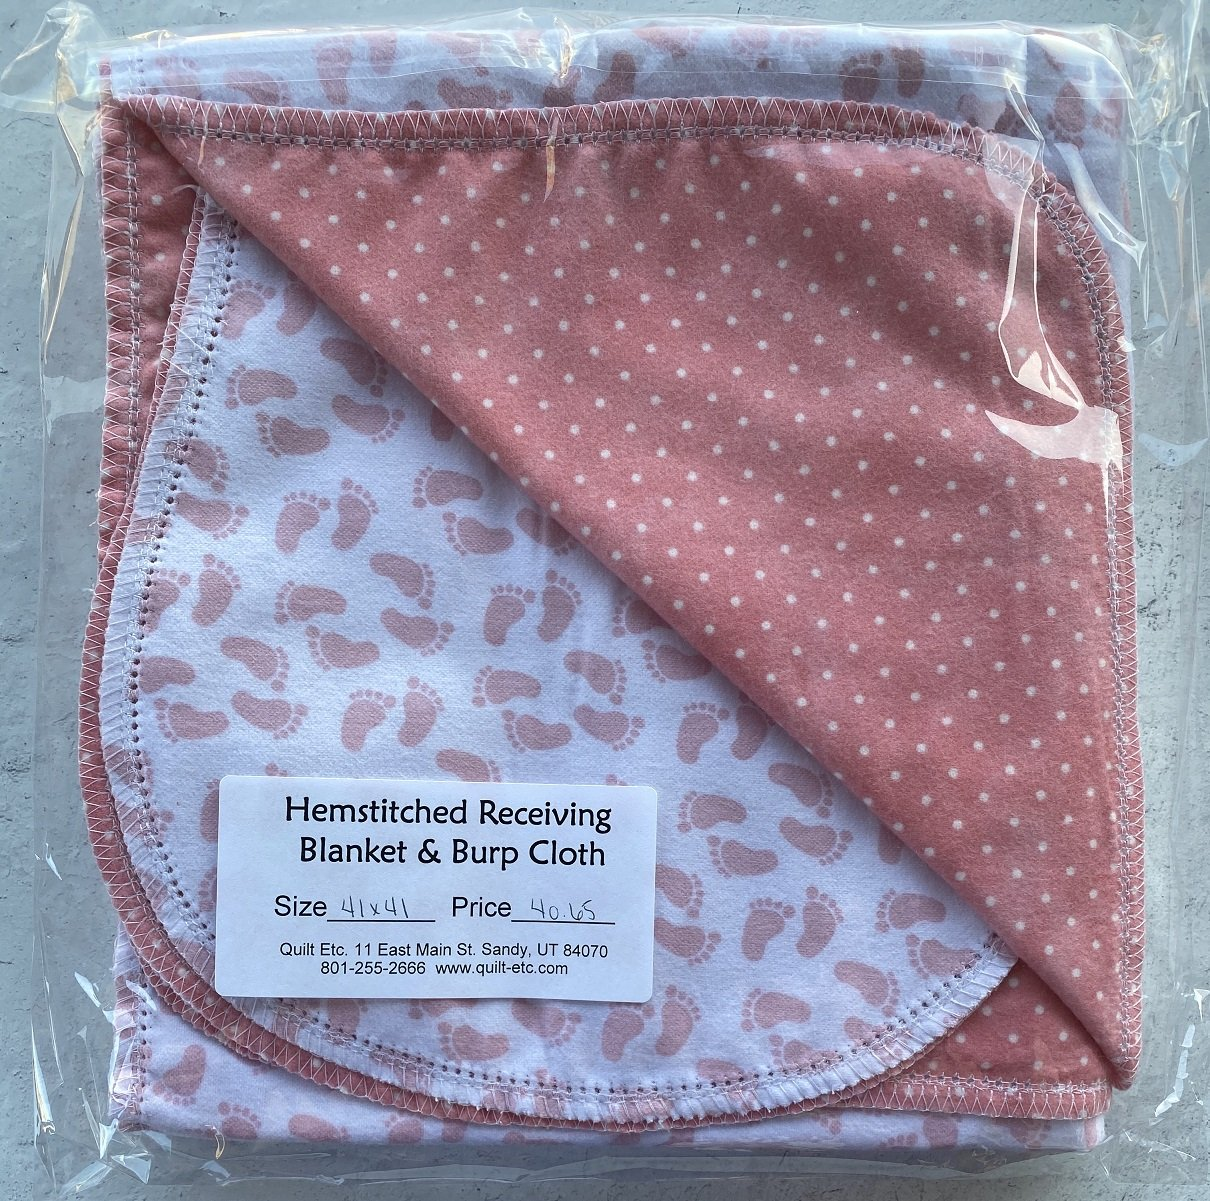 Hemstitched Receiving Blanket & Burp Cloth 19